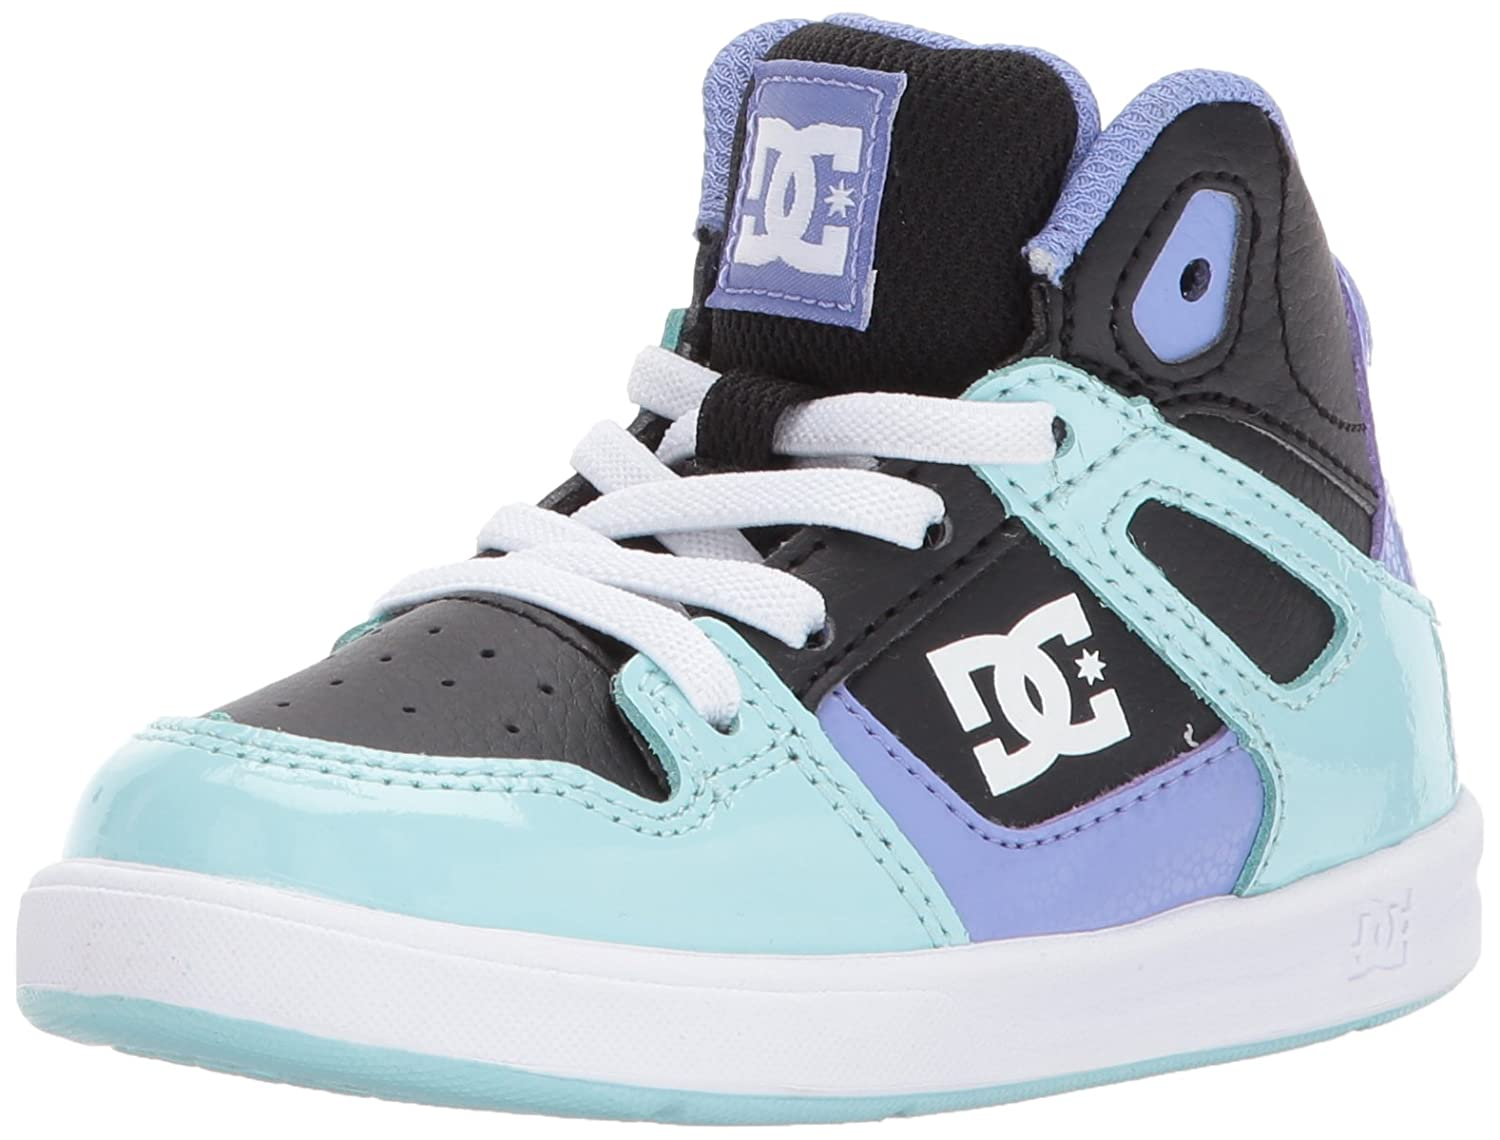 DC Youth Rebound Skate Shoes B01MQWBKD9 2.5 M US Little Kid|Black/Multi